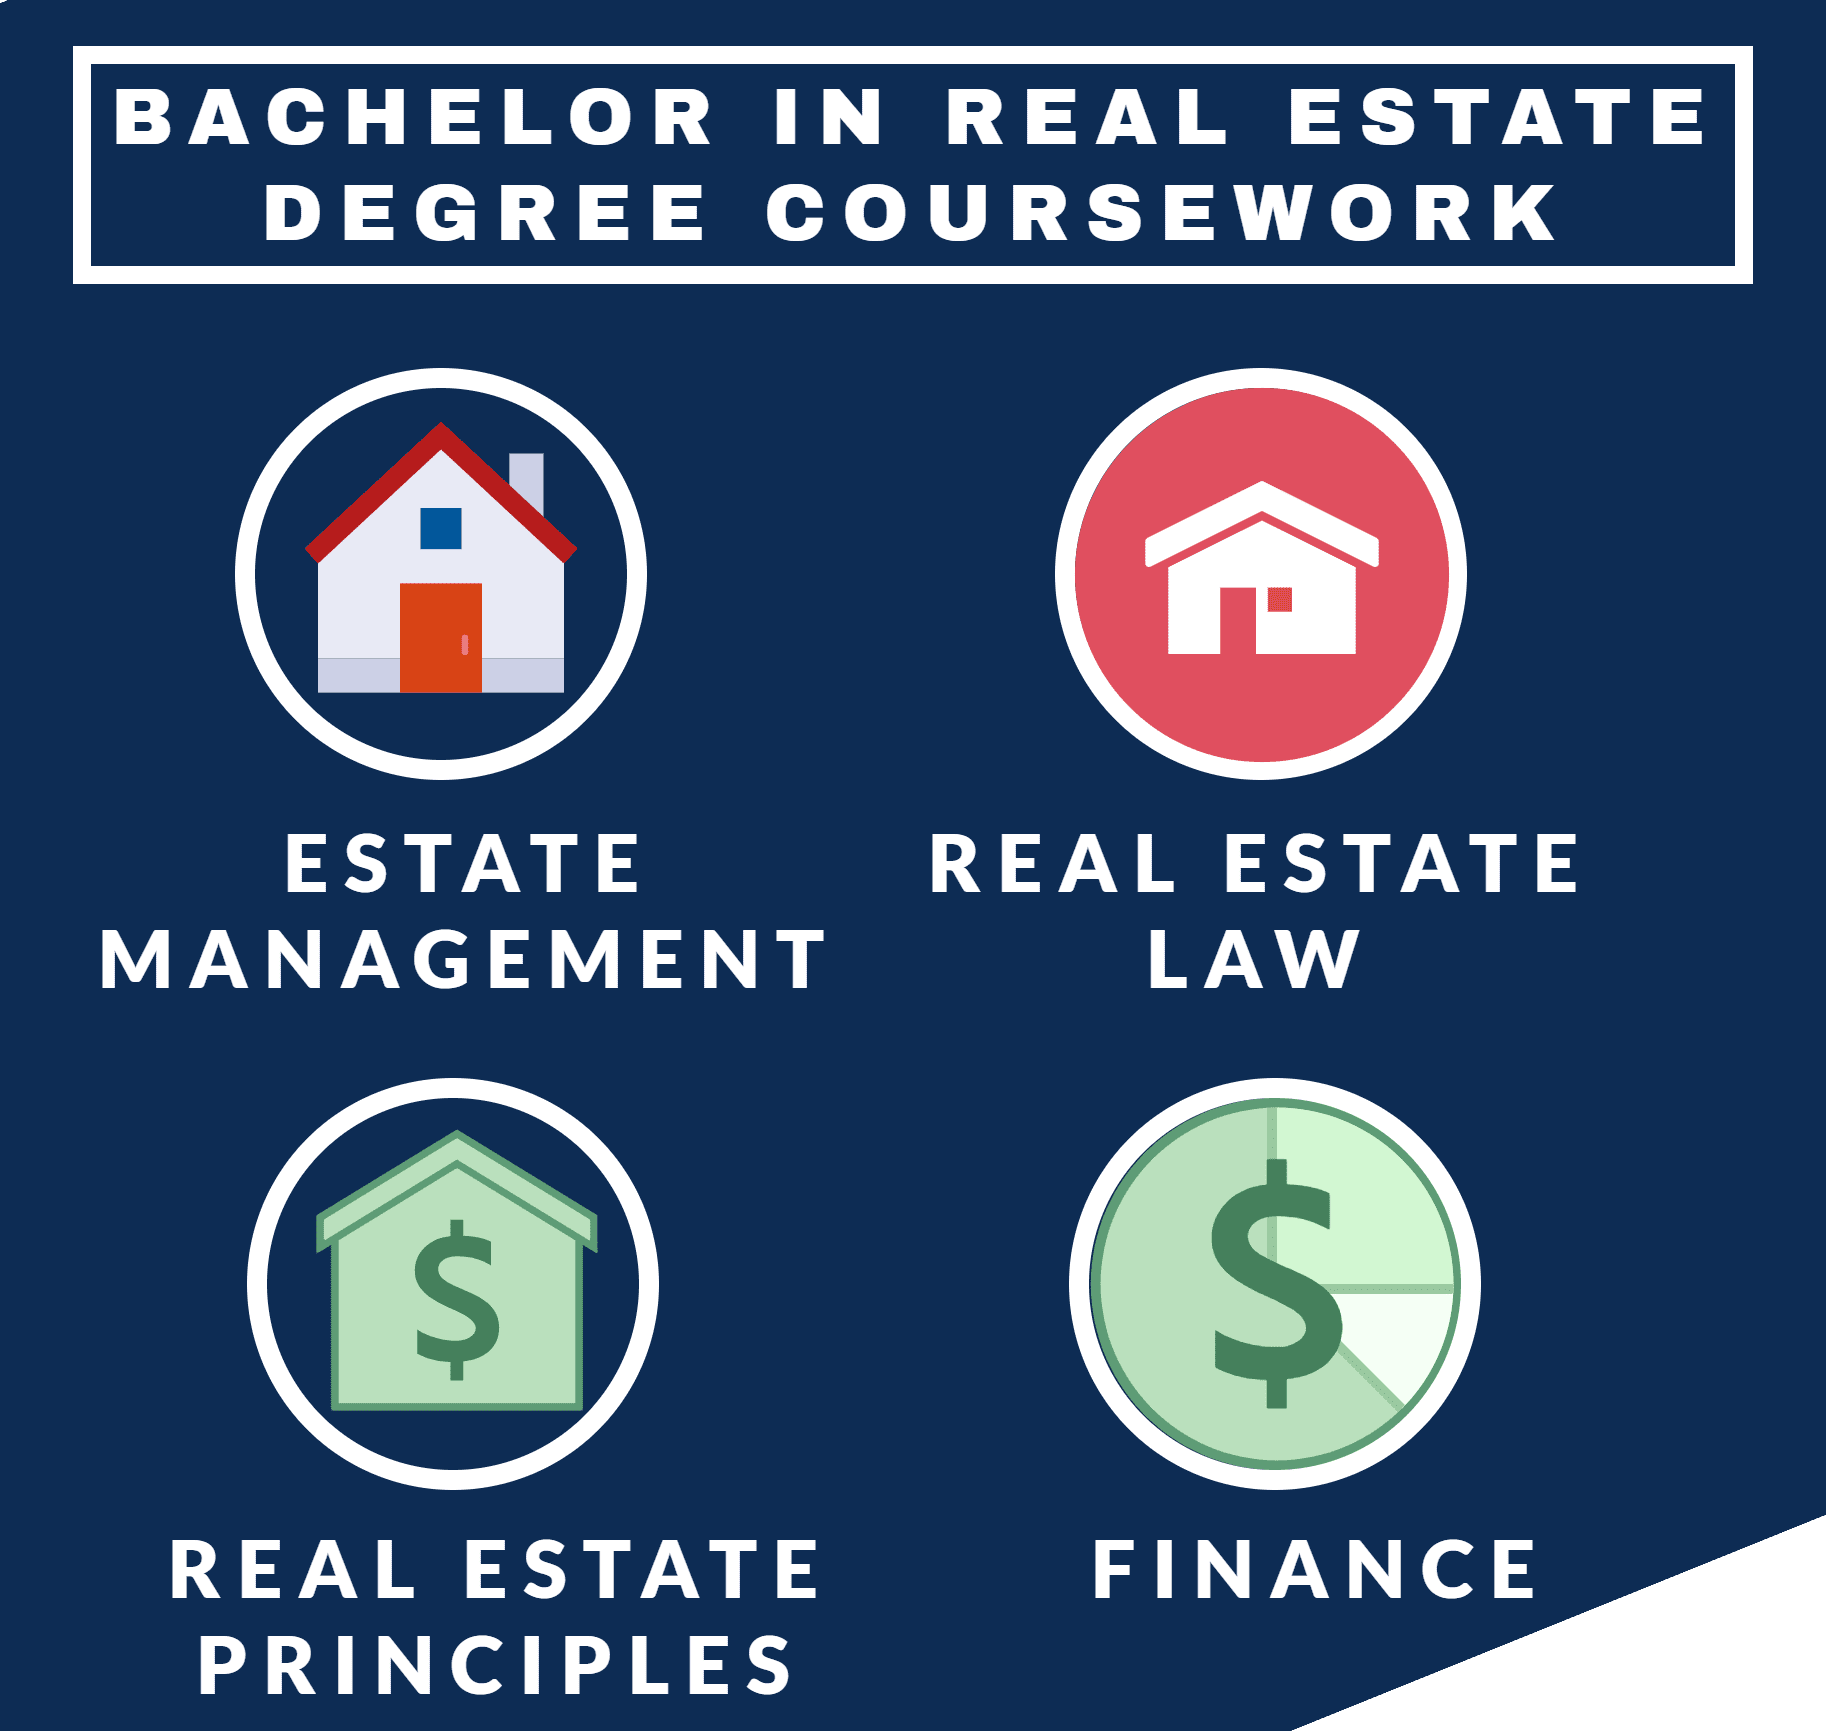 Real Estate coursework